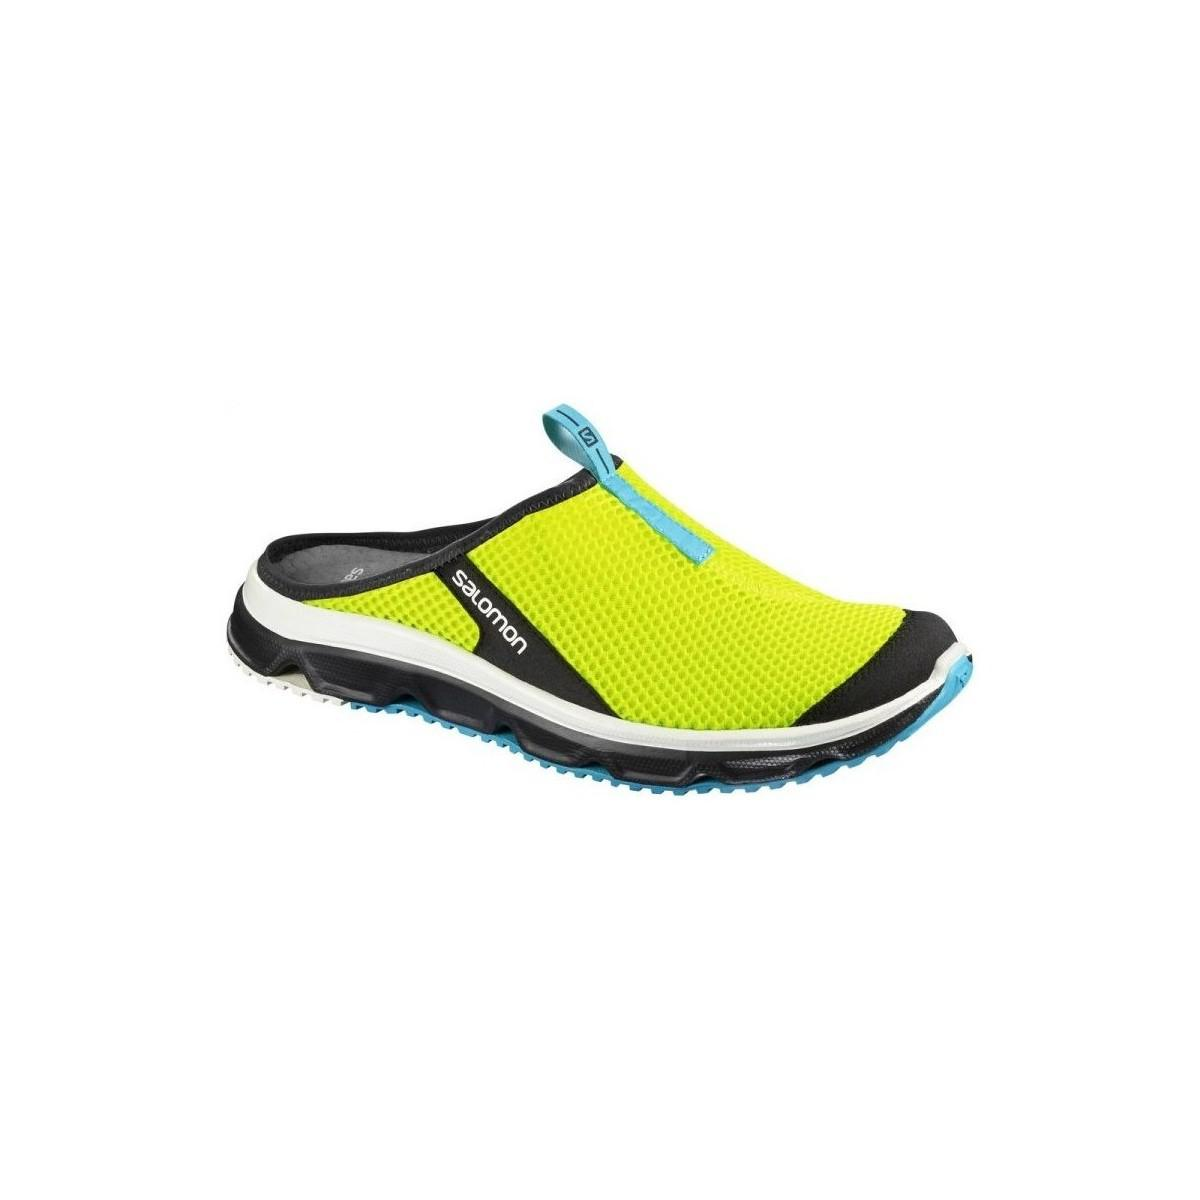 Yves Salomon Rx Slide 30 Men s In Yellow in Yellow for Men - Lyst d635ba86a64